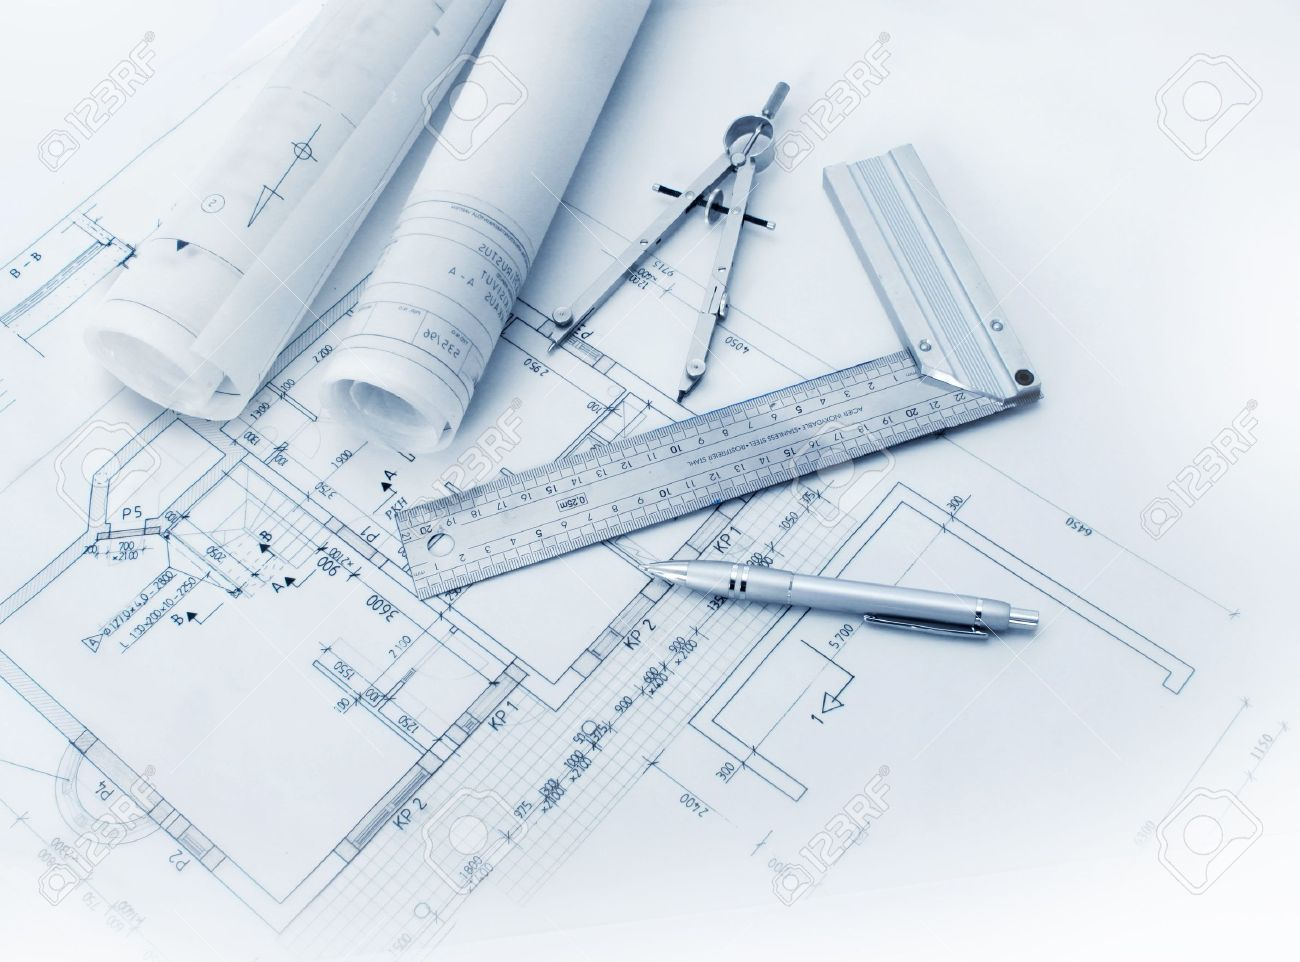 Construction plan tools and blueprint drawings stock photo 8952661